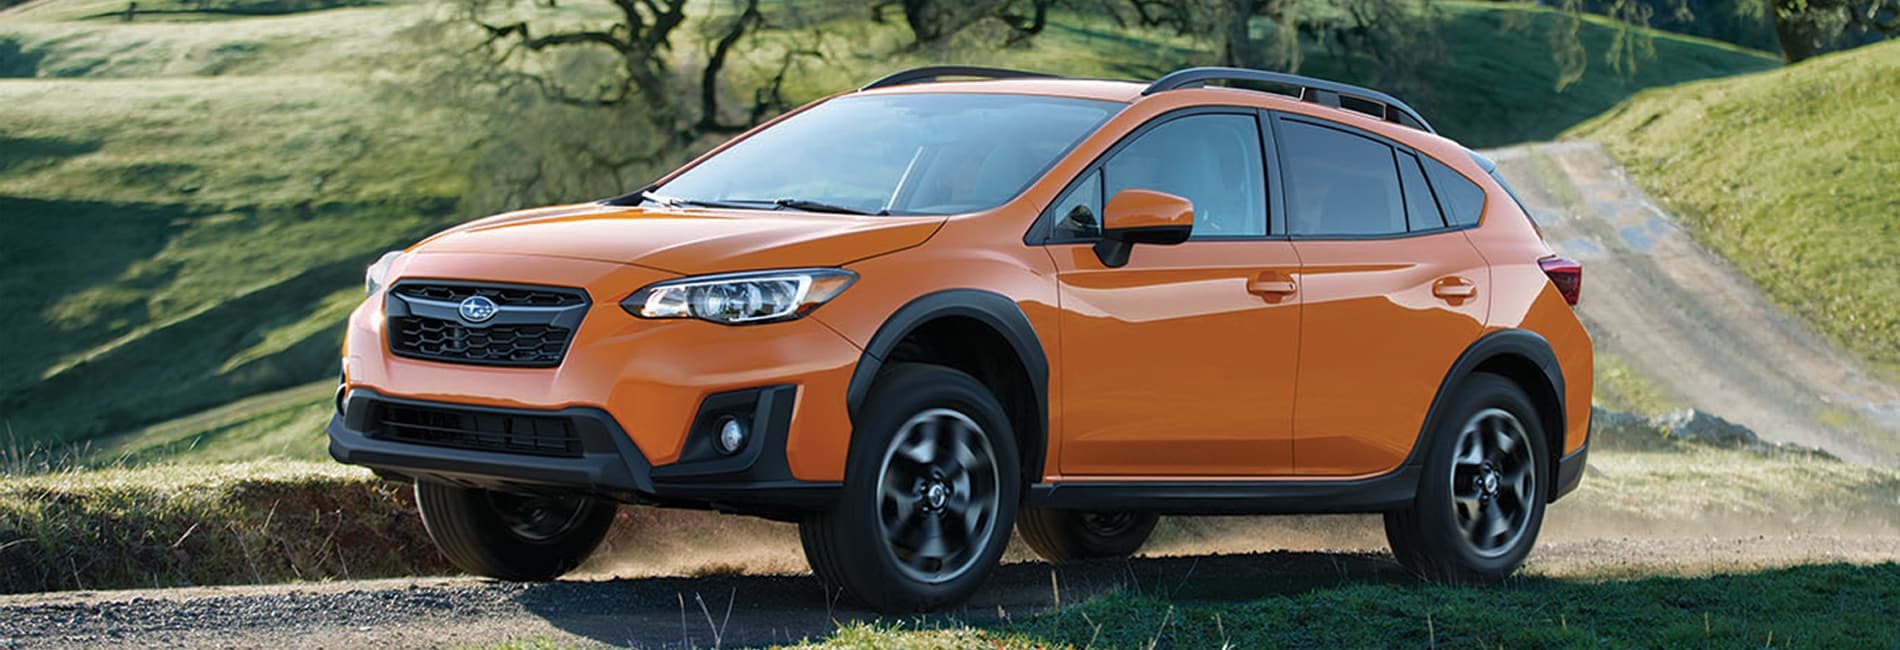 Subaru Crosstrek Exterior Vehicle Features